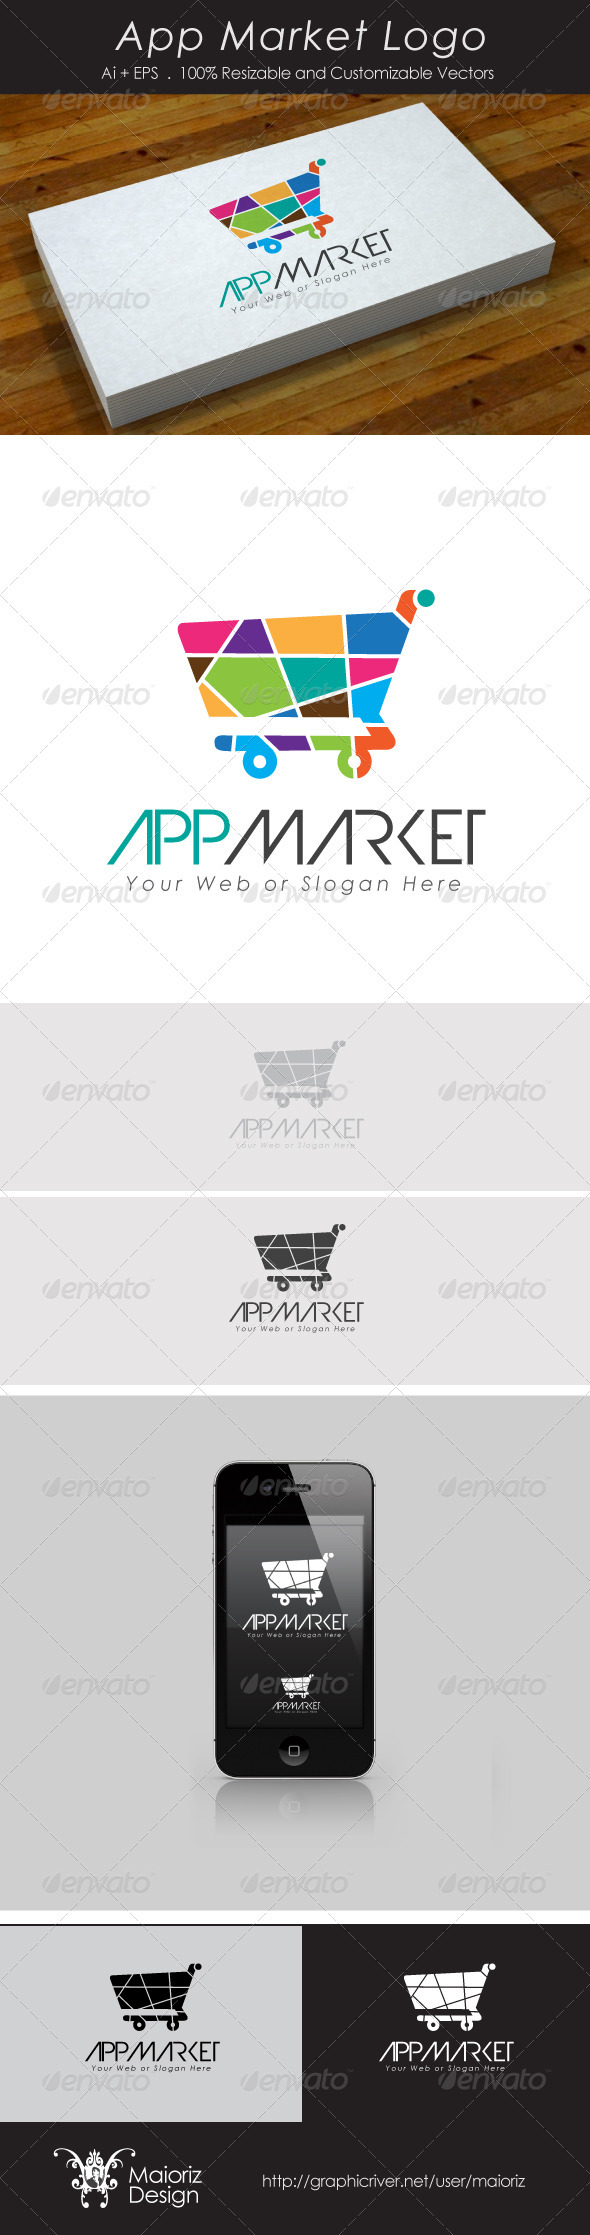 App Market Logo - Objects Logo Templates